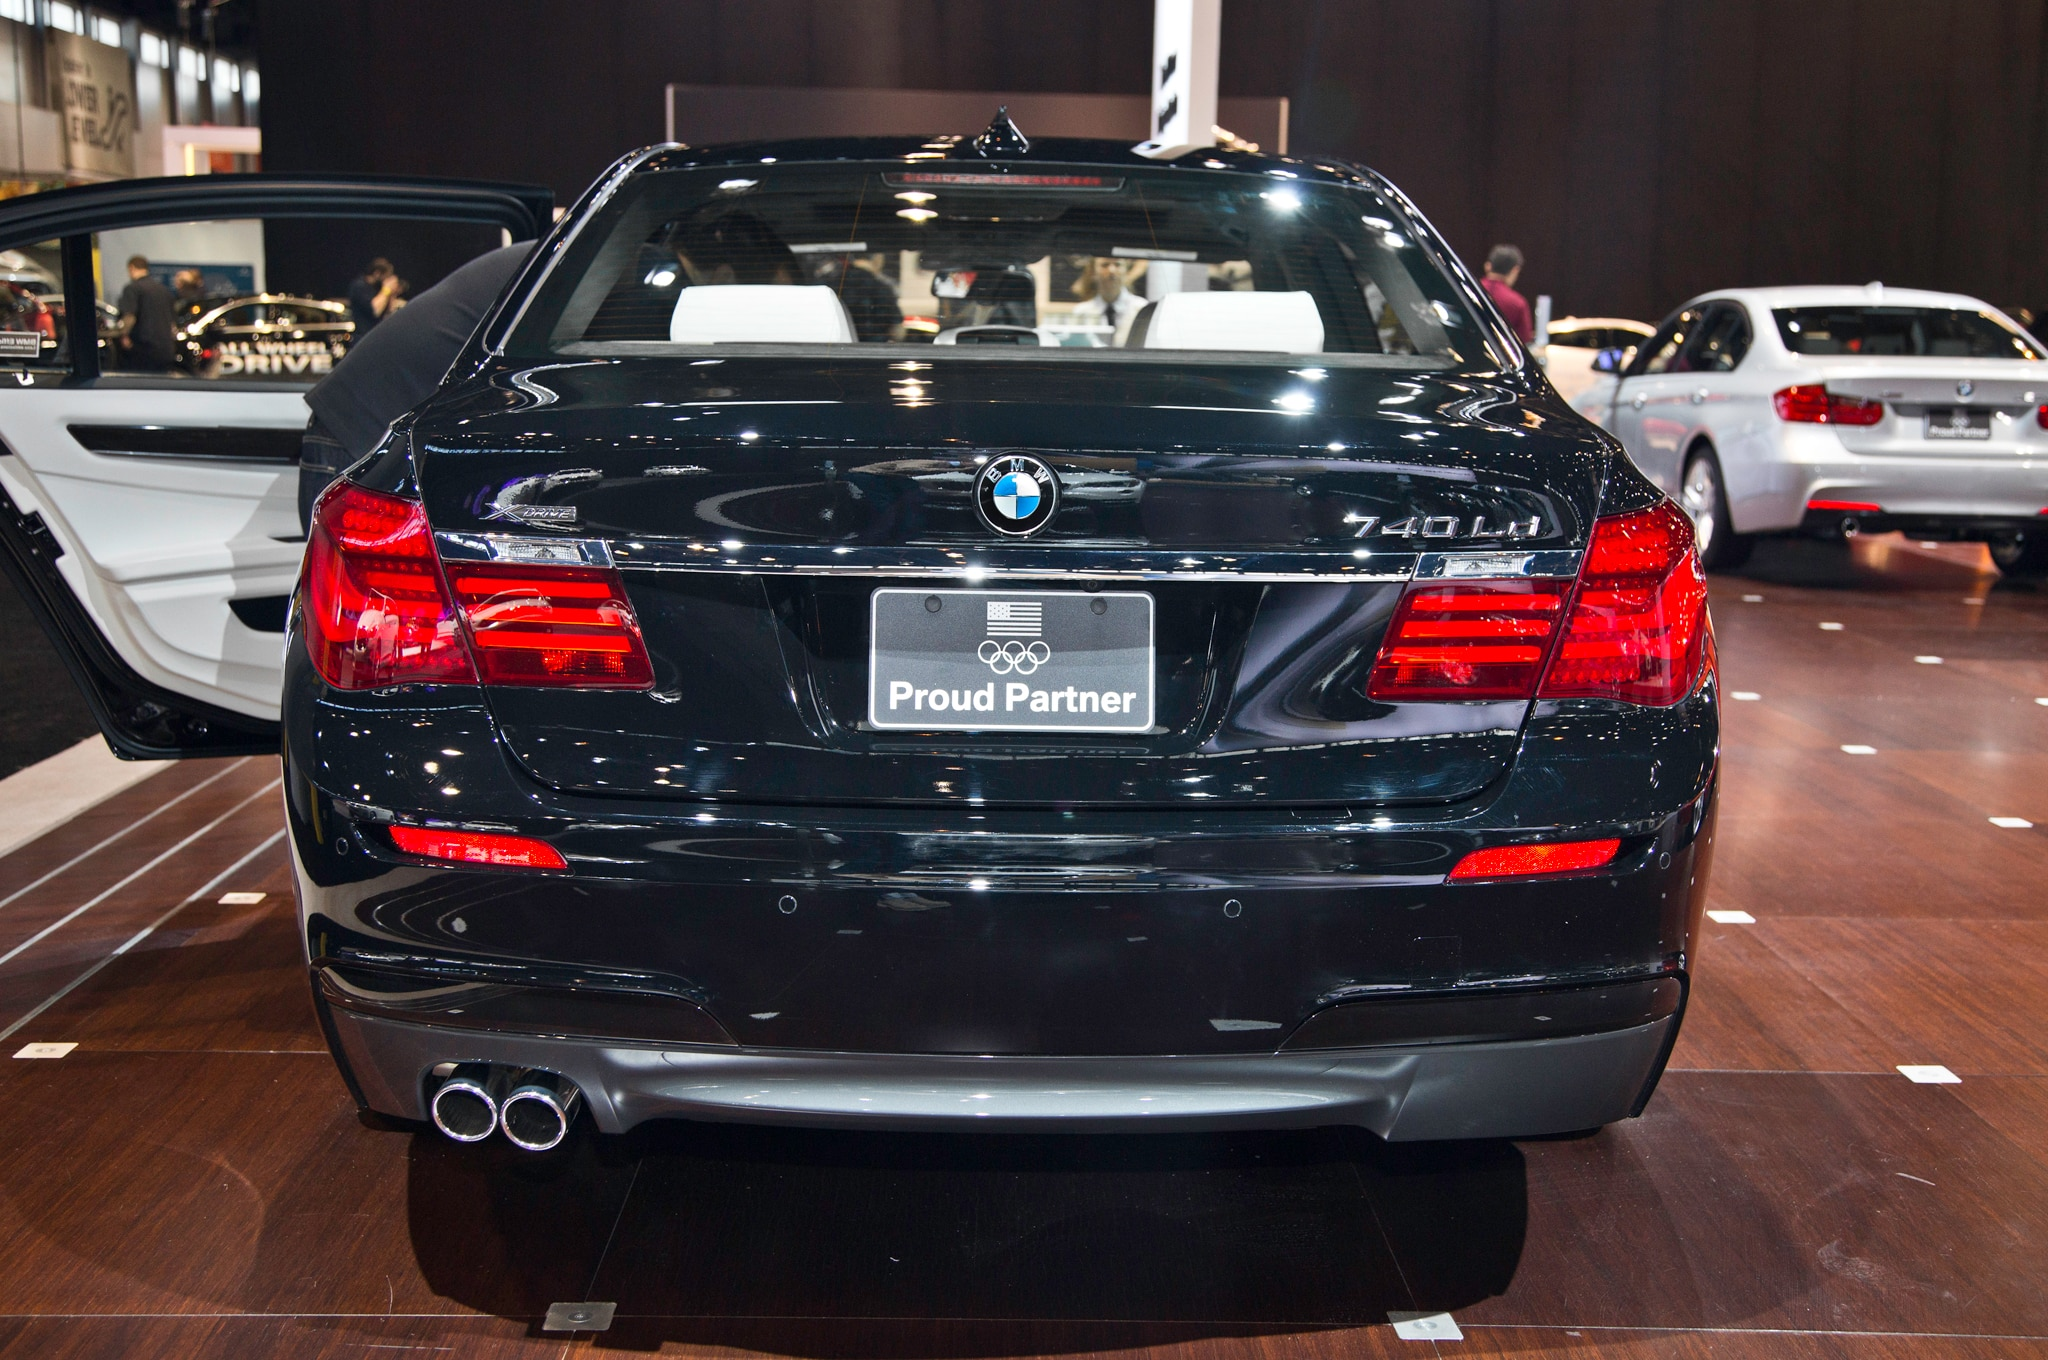 2014 bmw 740ld xdrive announced ahead of 2014 chicago auto show automobile magazine. Black Bedroom Furniture Sets. Home Design Ideas